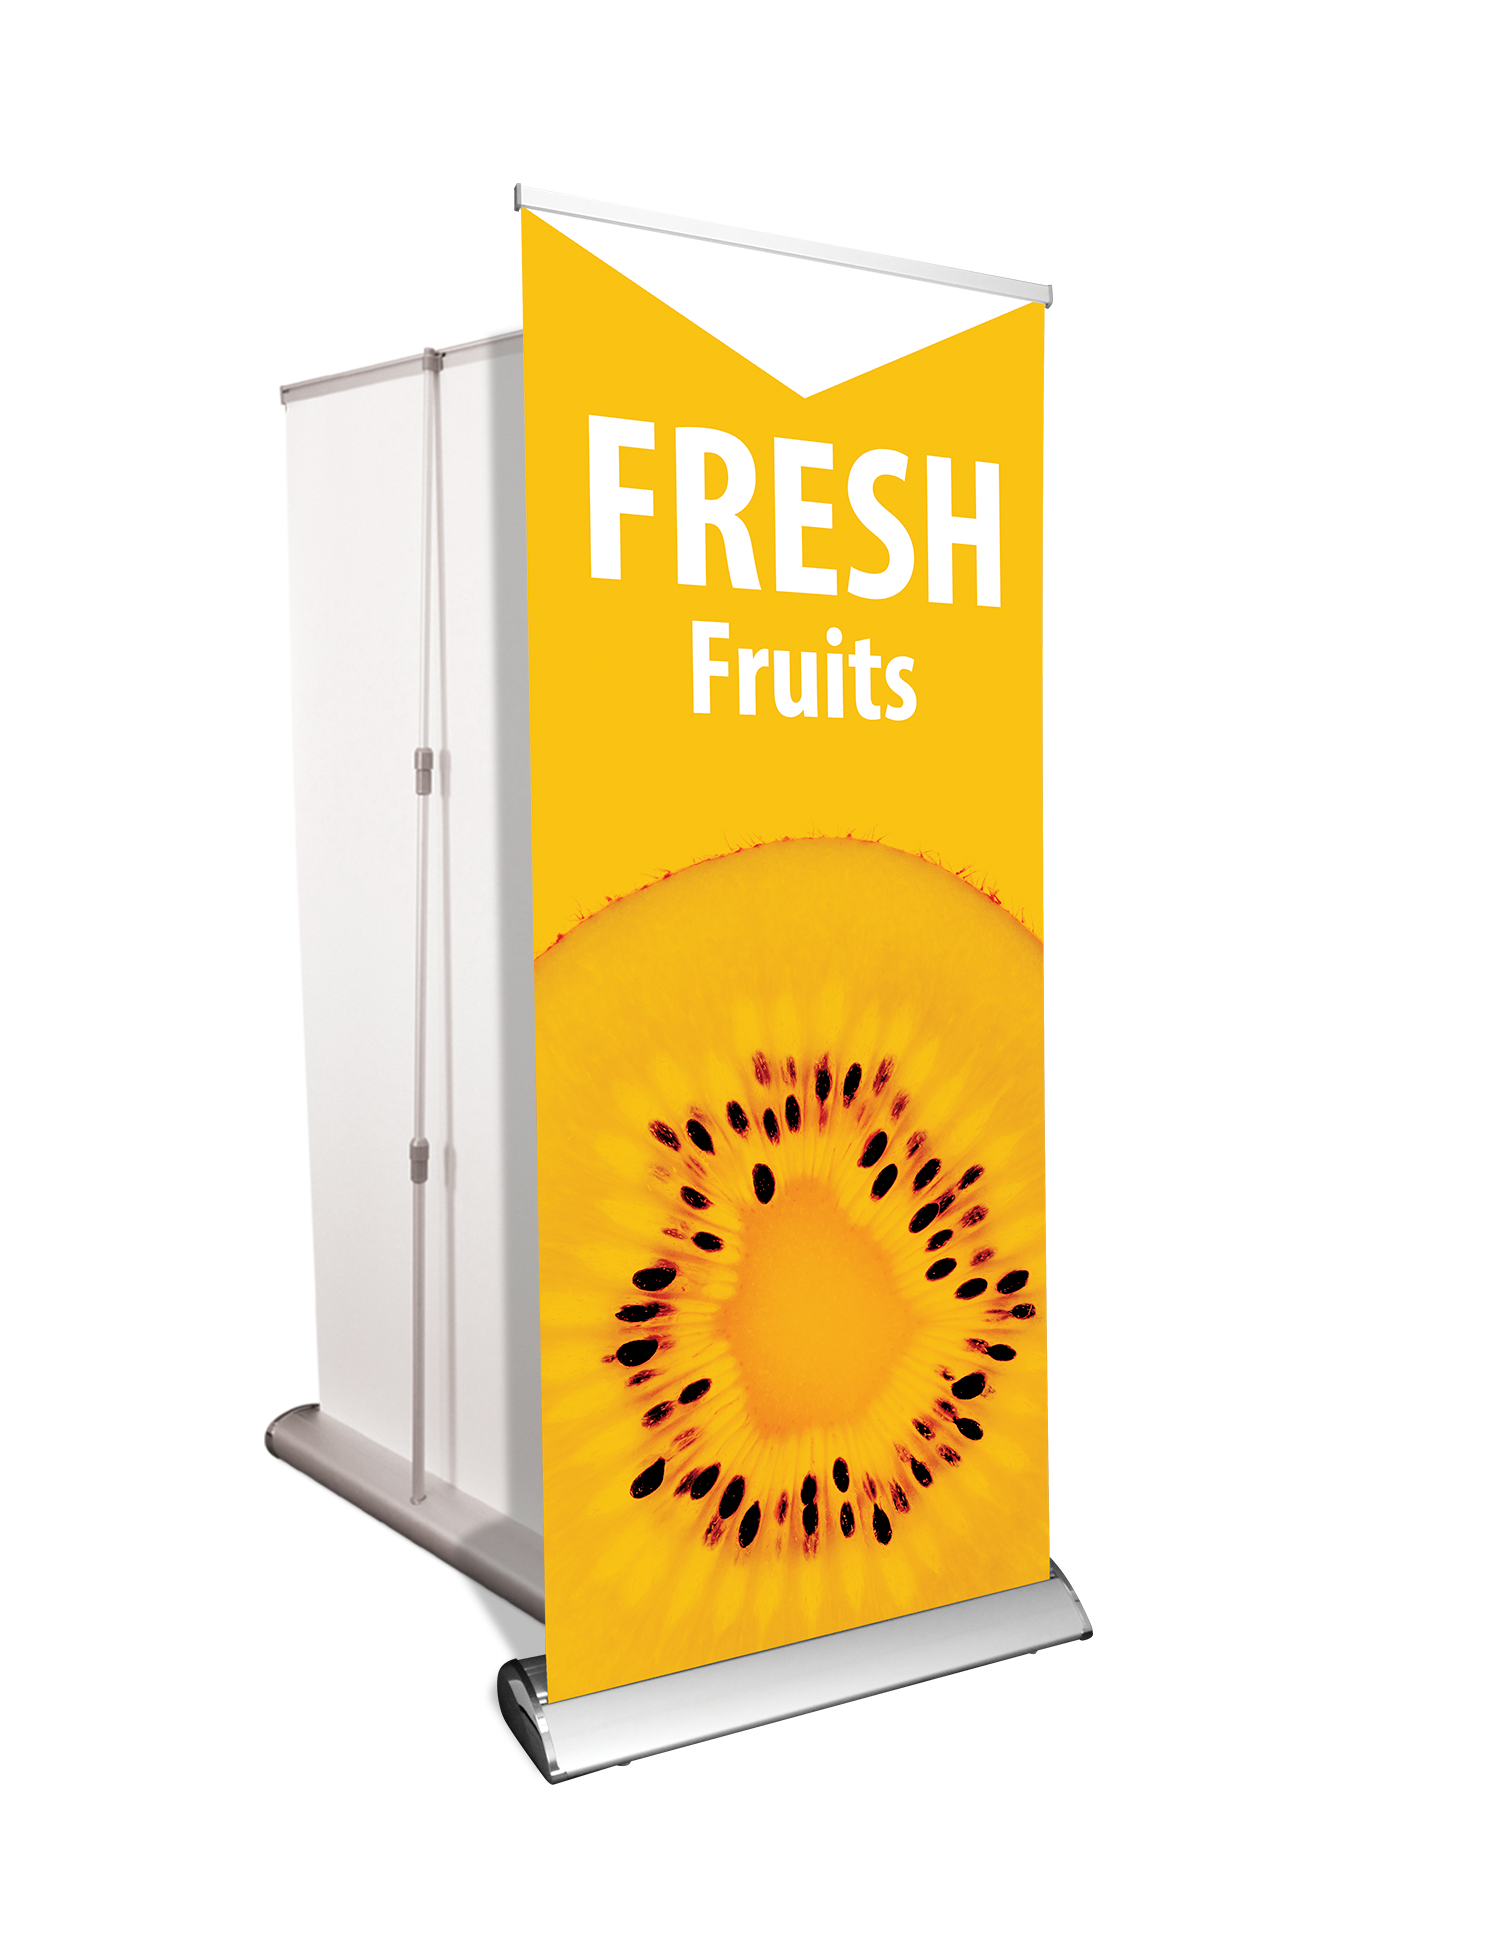 Banner Stand - Pull up style